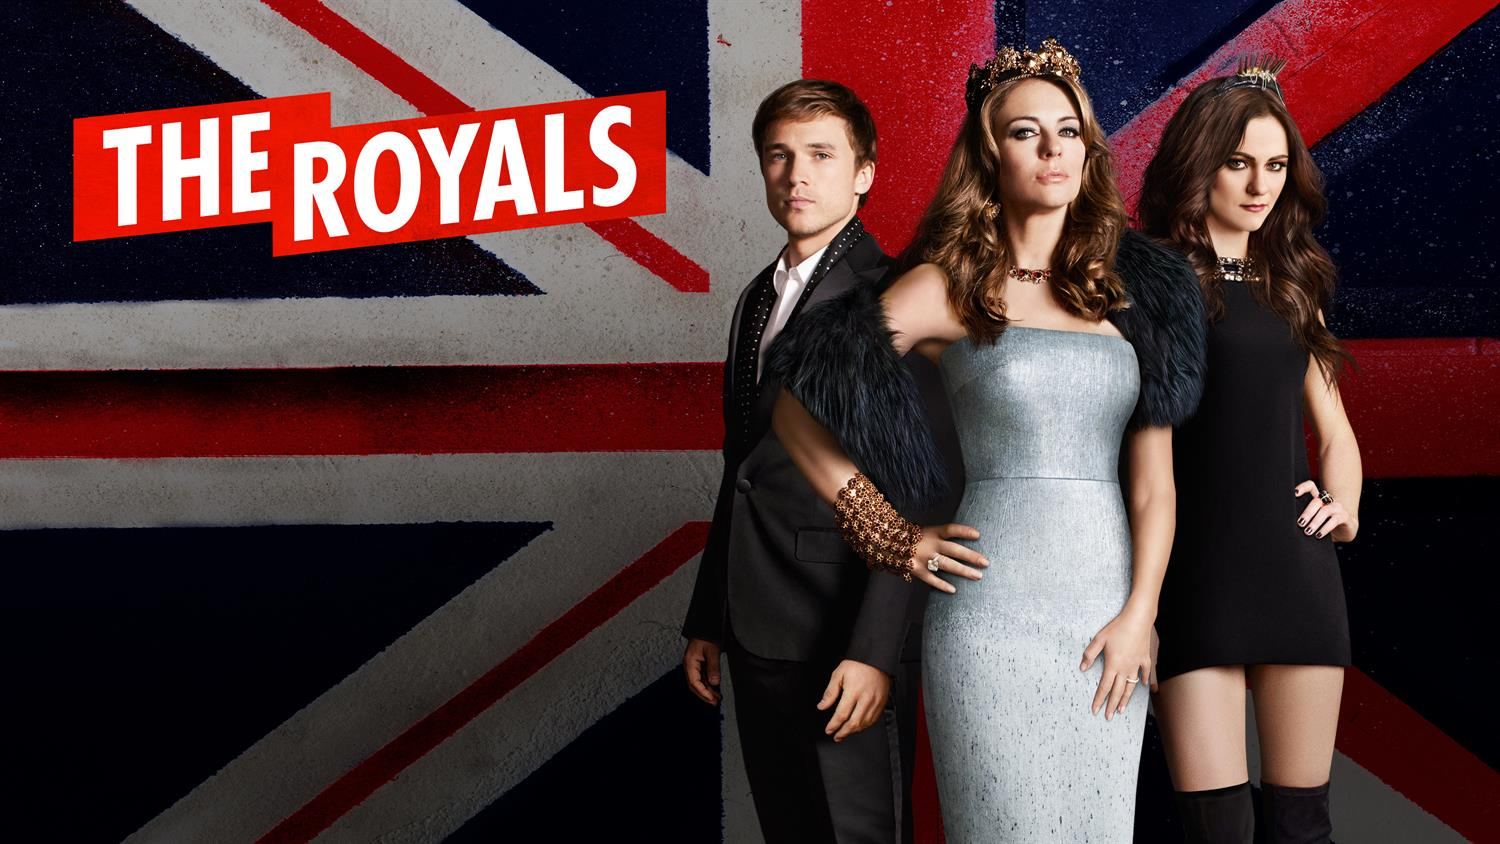 TheRoyals_3000x1688_new_1500x844_413869635786